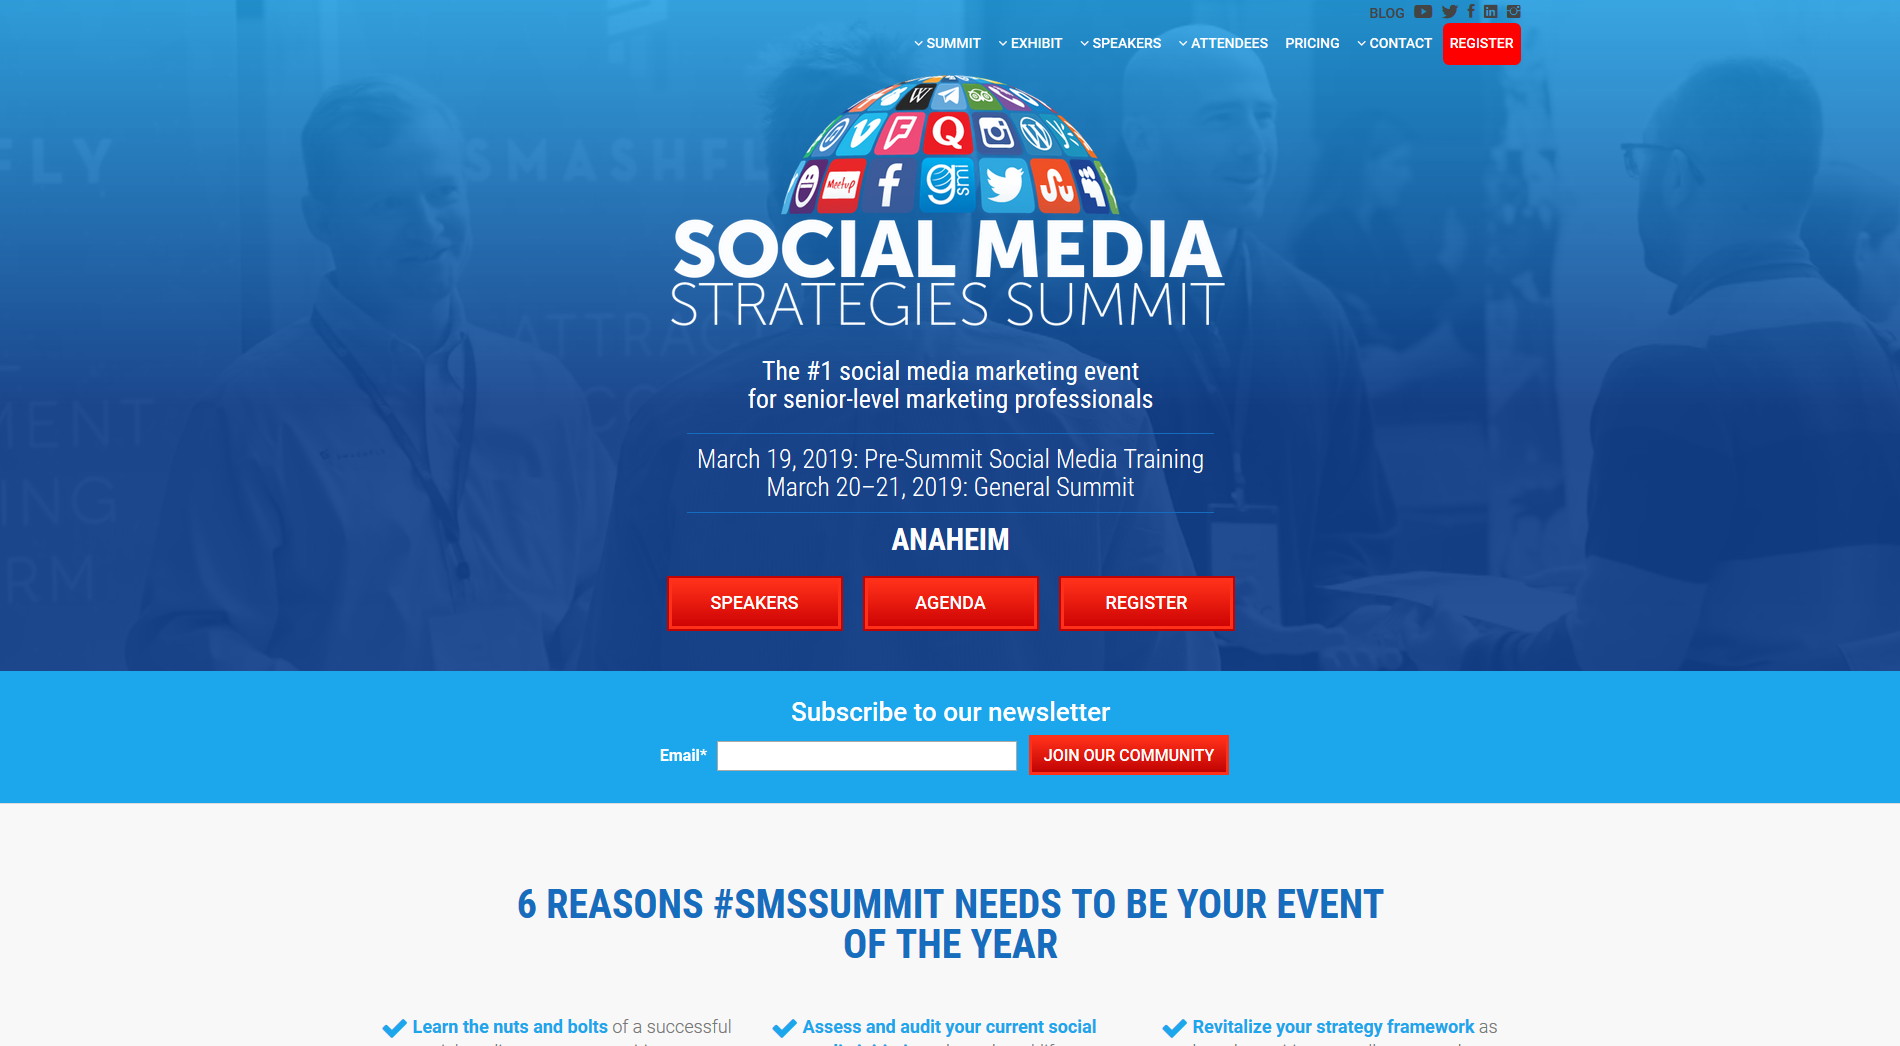 Social Media Strategies Summit will be in Anaheim